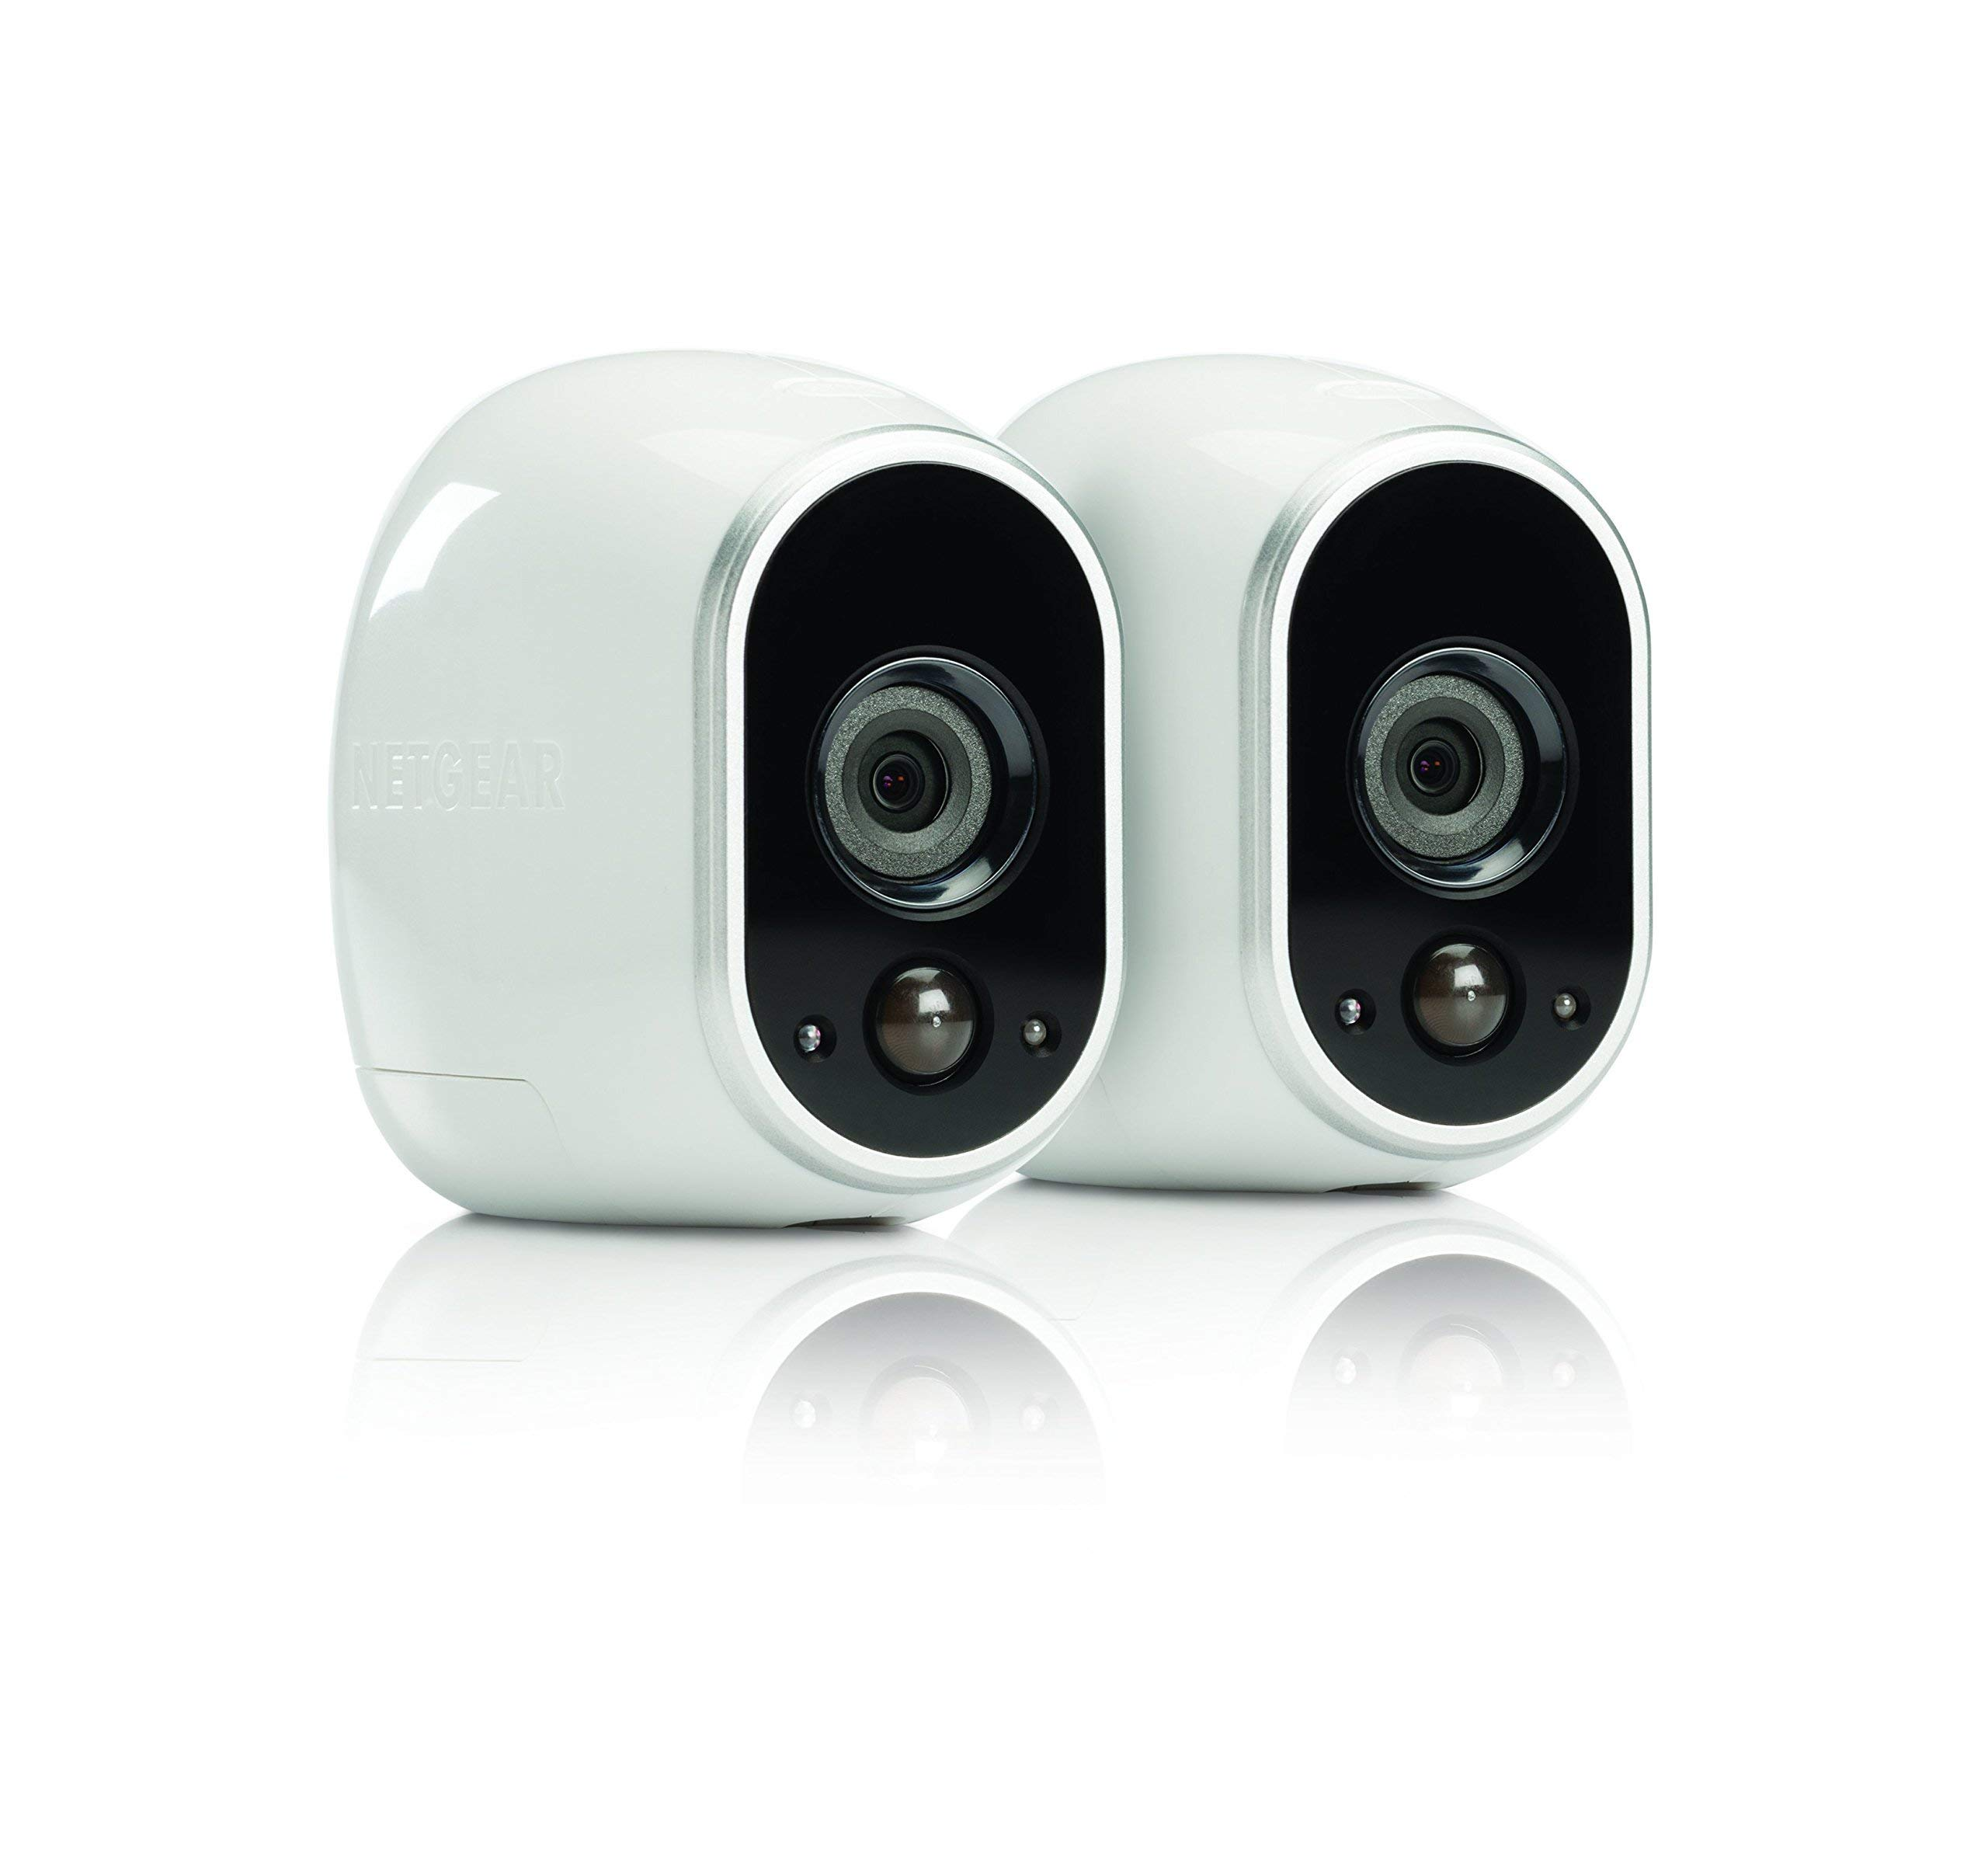 Netgear Arlo Smart Security - 2 HD Camera Security System,Wire-Free, Indoor/Outdoor with Night Vision (VMS3230) (VMS3230 (Renewed) by NETGEAR